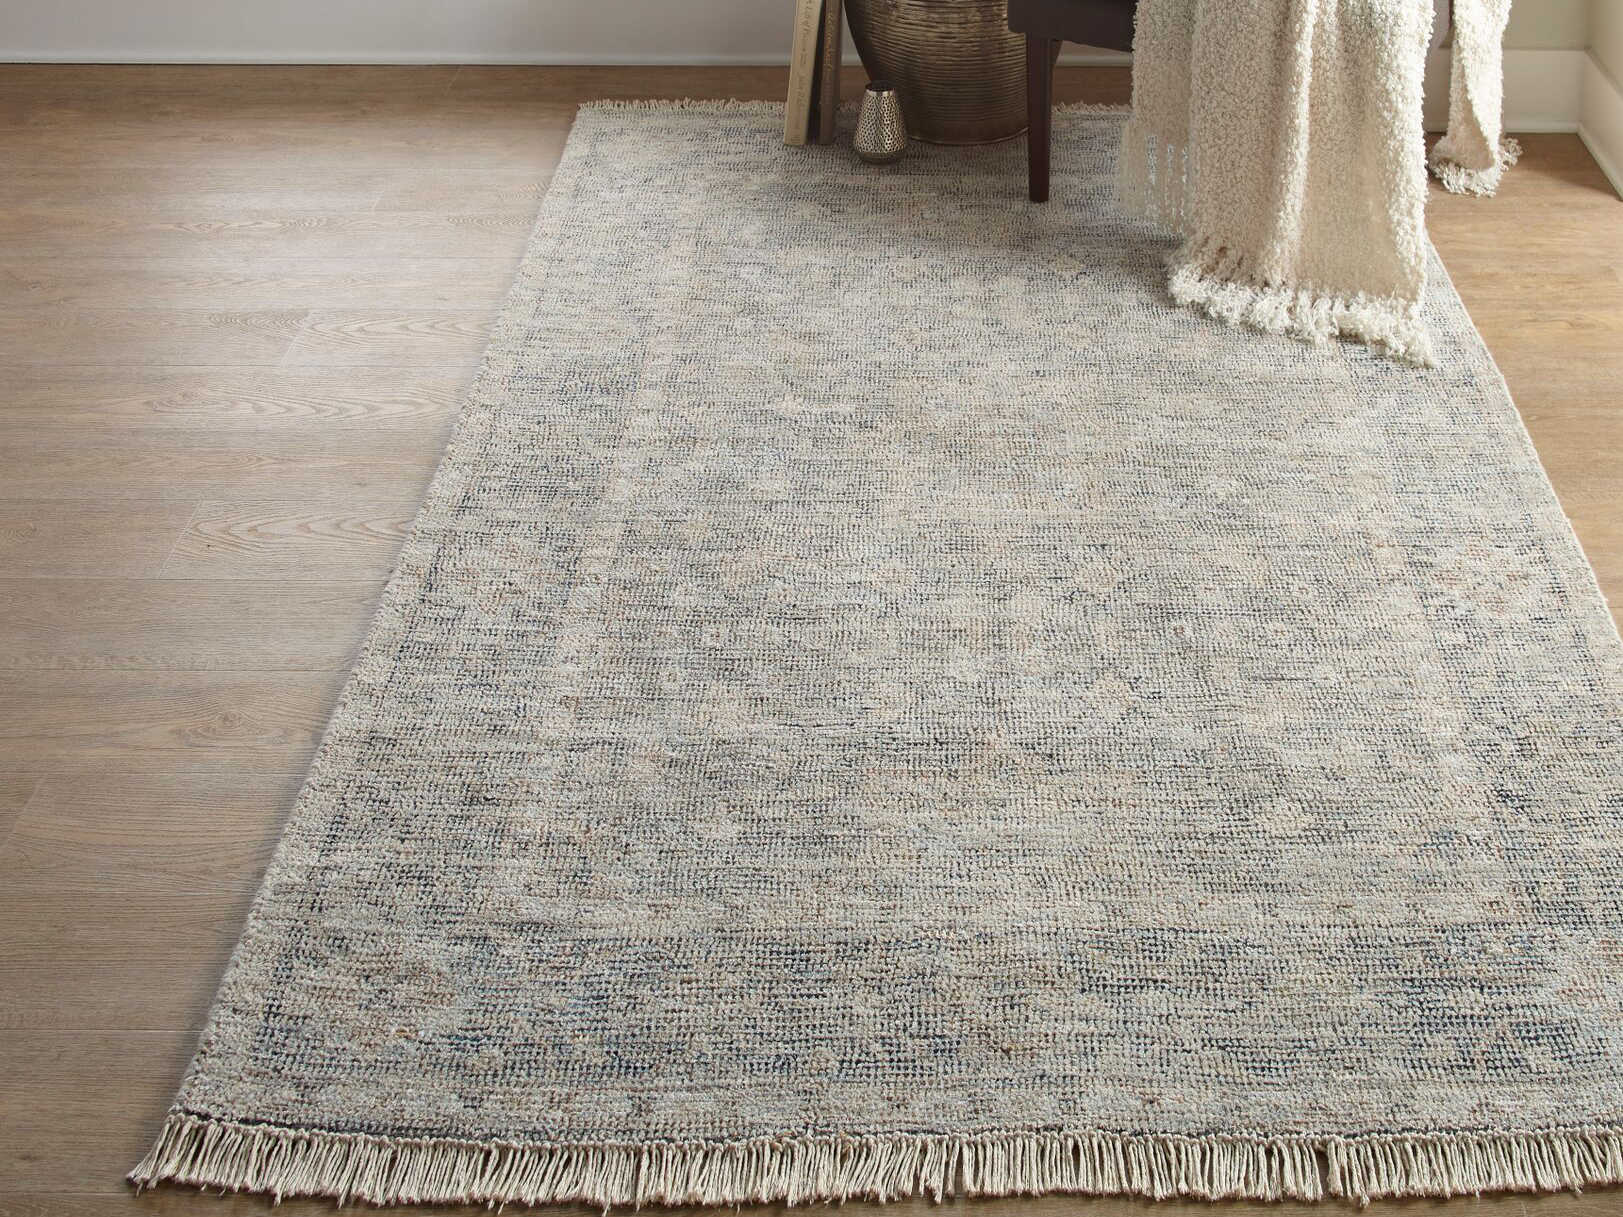 Feizy Rugs Caldwell Gray Rectangular Area Rug 8799f Gray